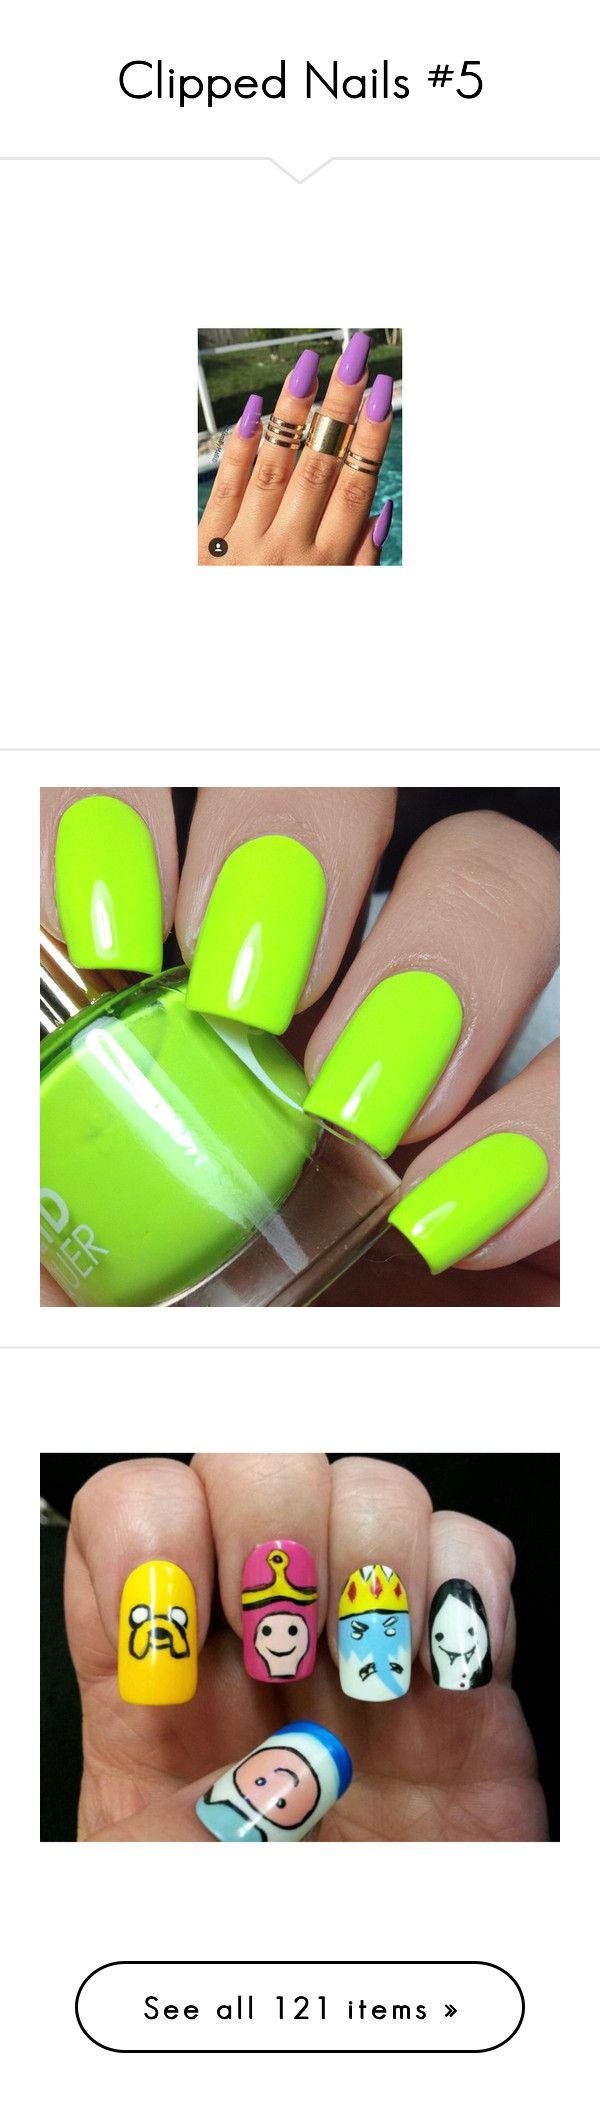 """Clipped Nails #5"" by aniahrhichkhidd ❤ liked on Polyvore featuring beauty products, nail care, nail polish, nails, makeup, neon nail polish, fluorescent nail polish, lime green nail polish, nail treatments and hair"